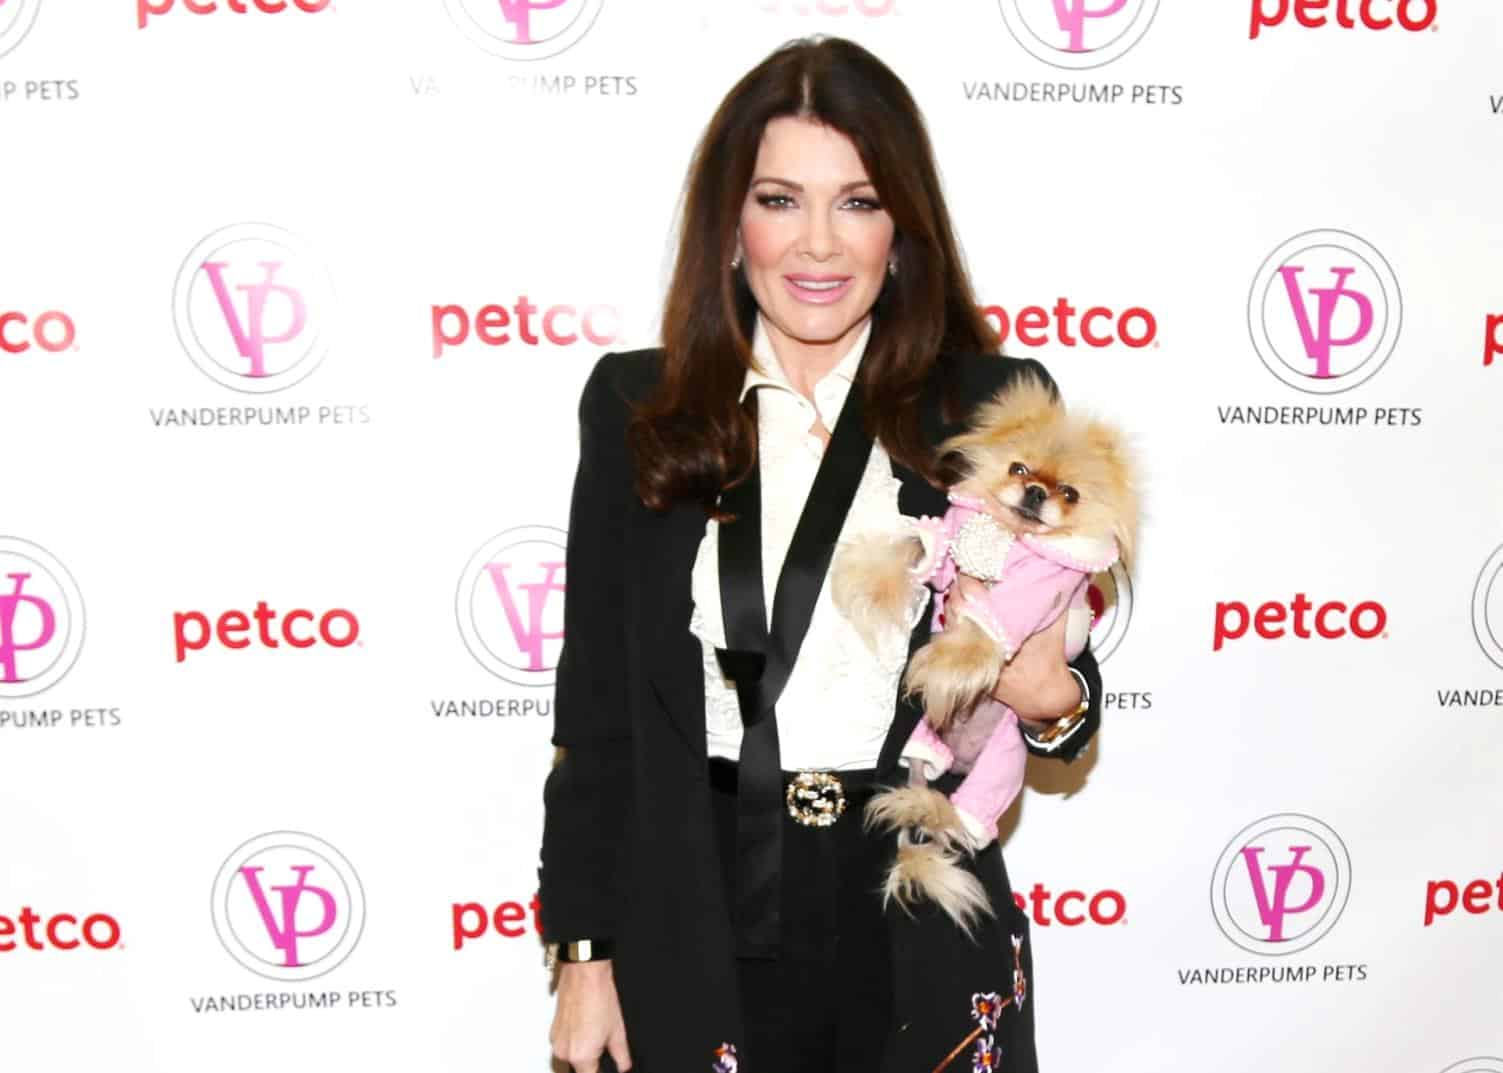 Vanderpump Dogs Ex-Employee Sues Lisa Vanderpump's Dog Foundation for Alleged Sexual Harassment, Claims Management Ignored Her Complaints